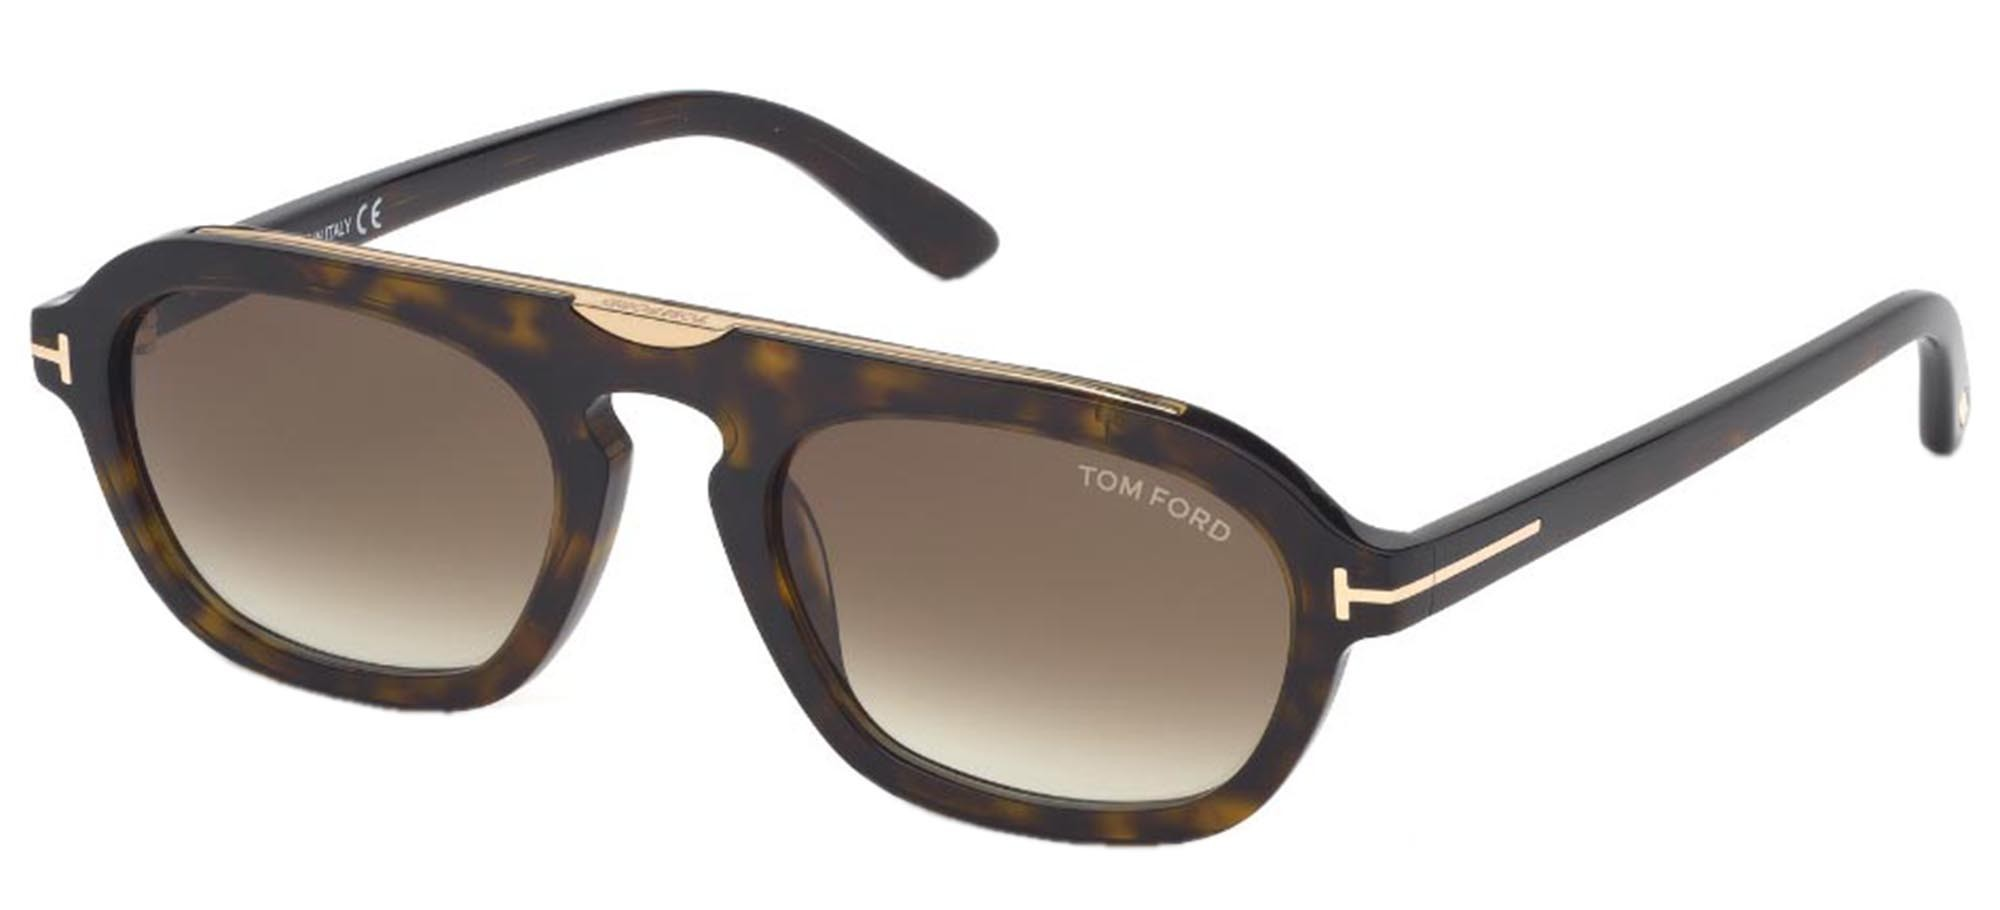 Tom Ford zonnebrillen SEBASTIAN-02 FT 0736